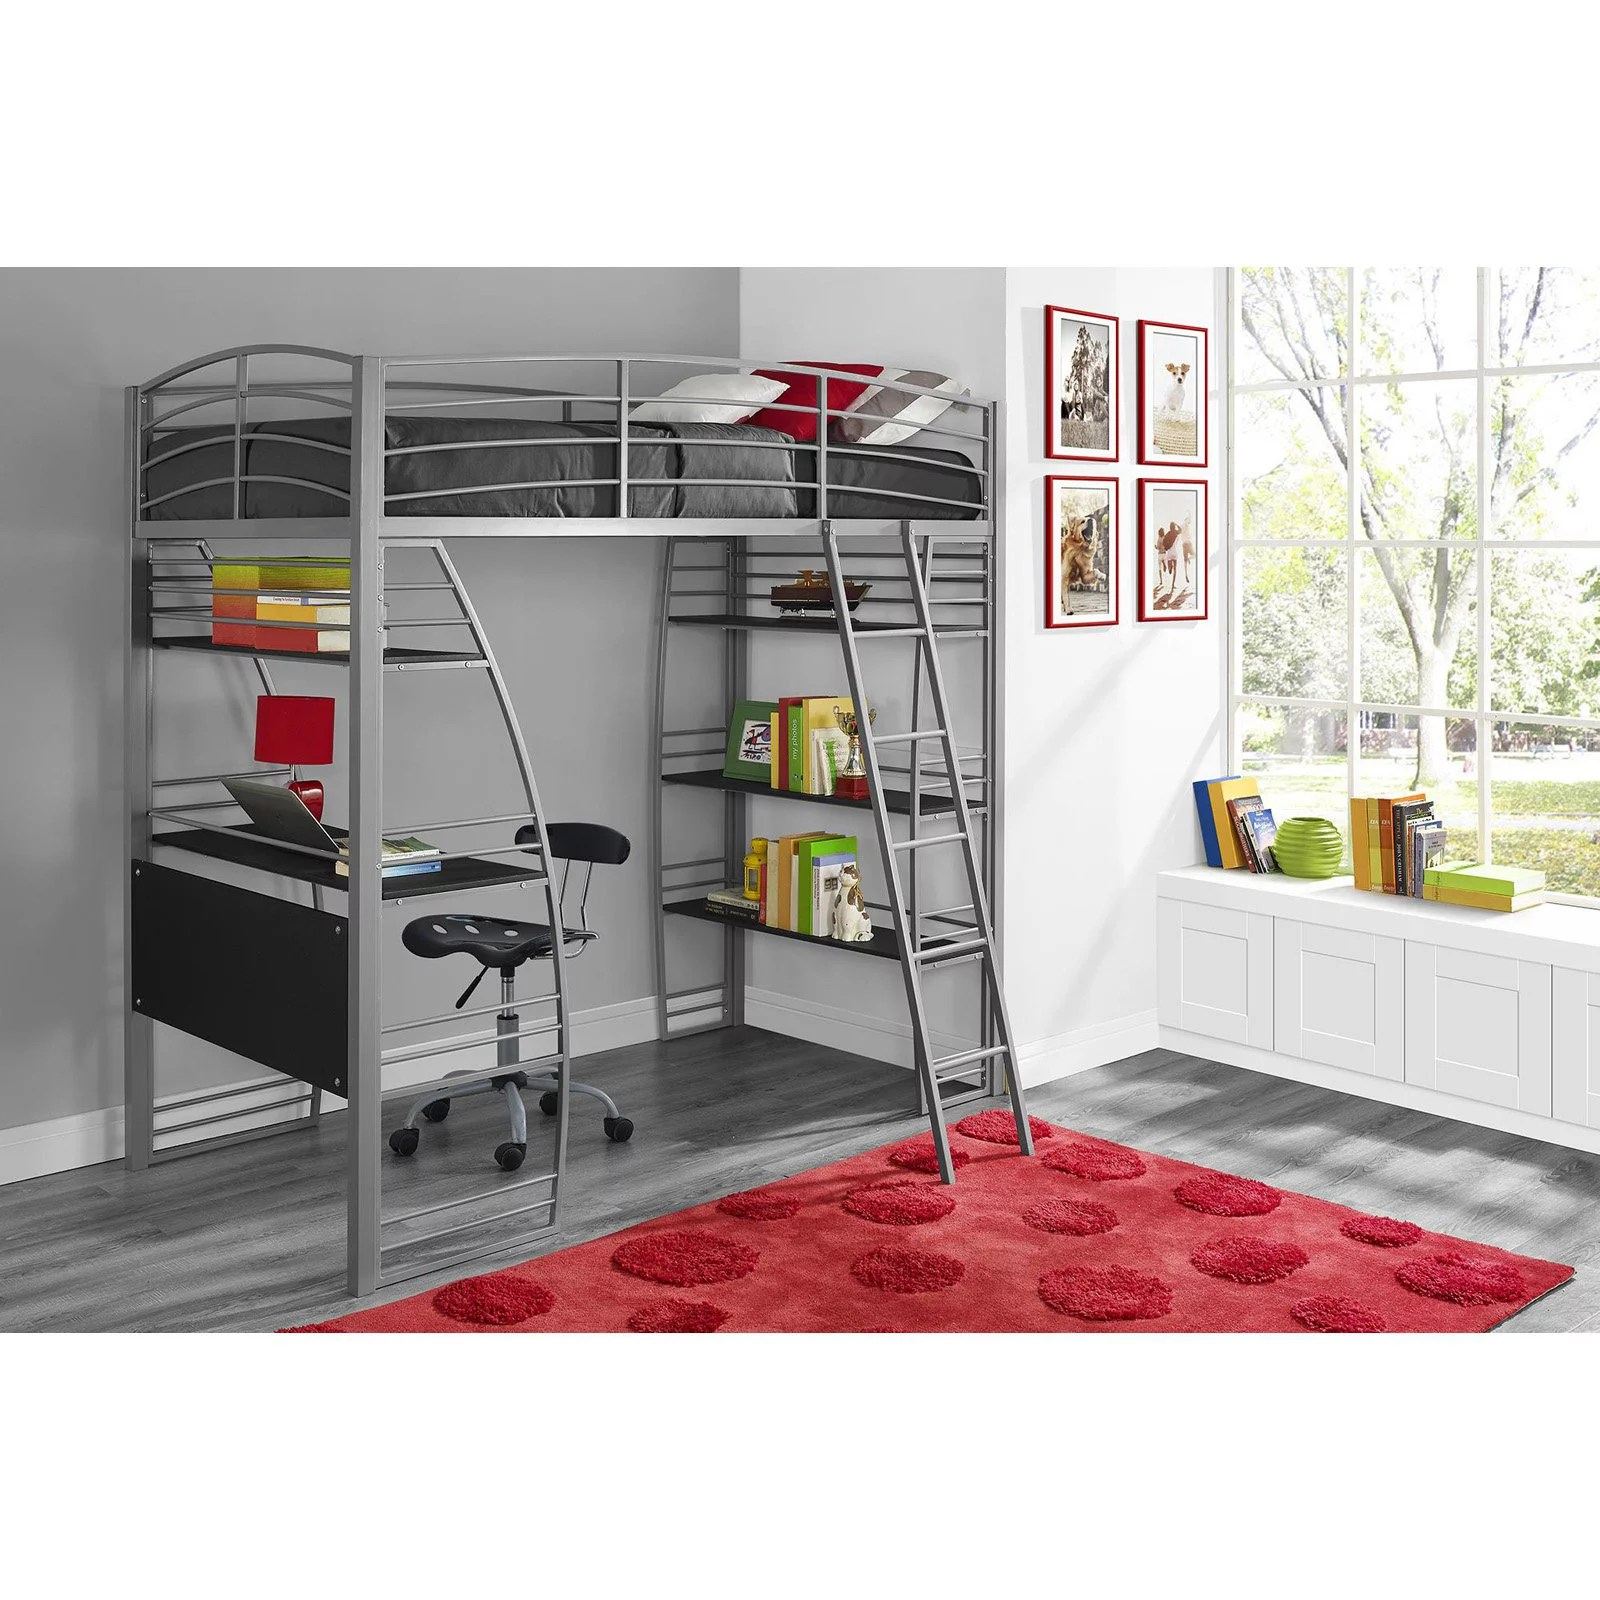 Bed With Desk Dorel Dhp Studio Twin Metal Loft Bed With Desk And Shelves Silver